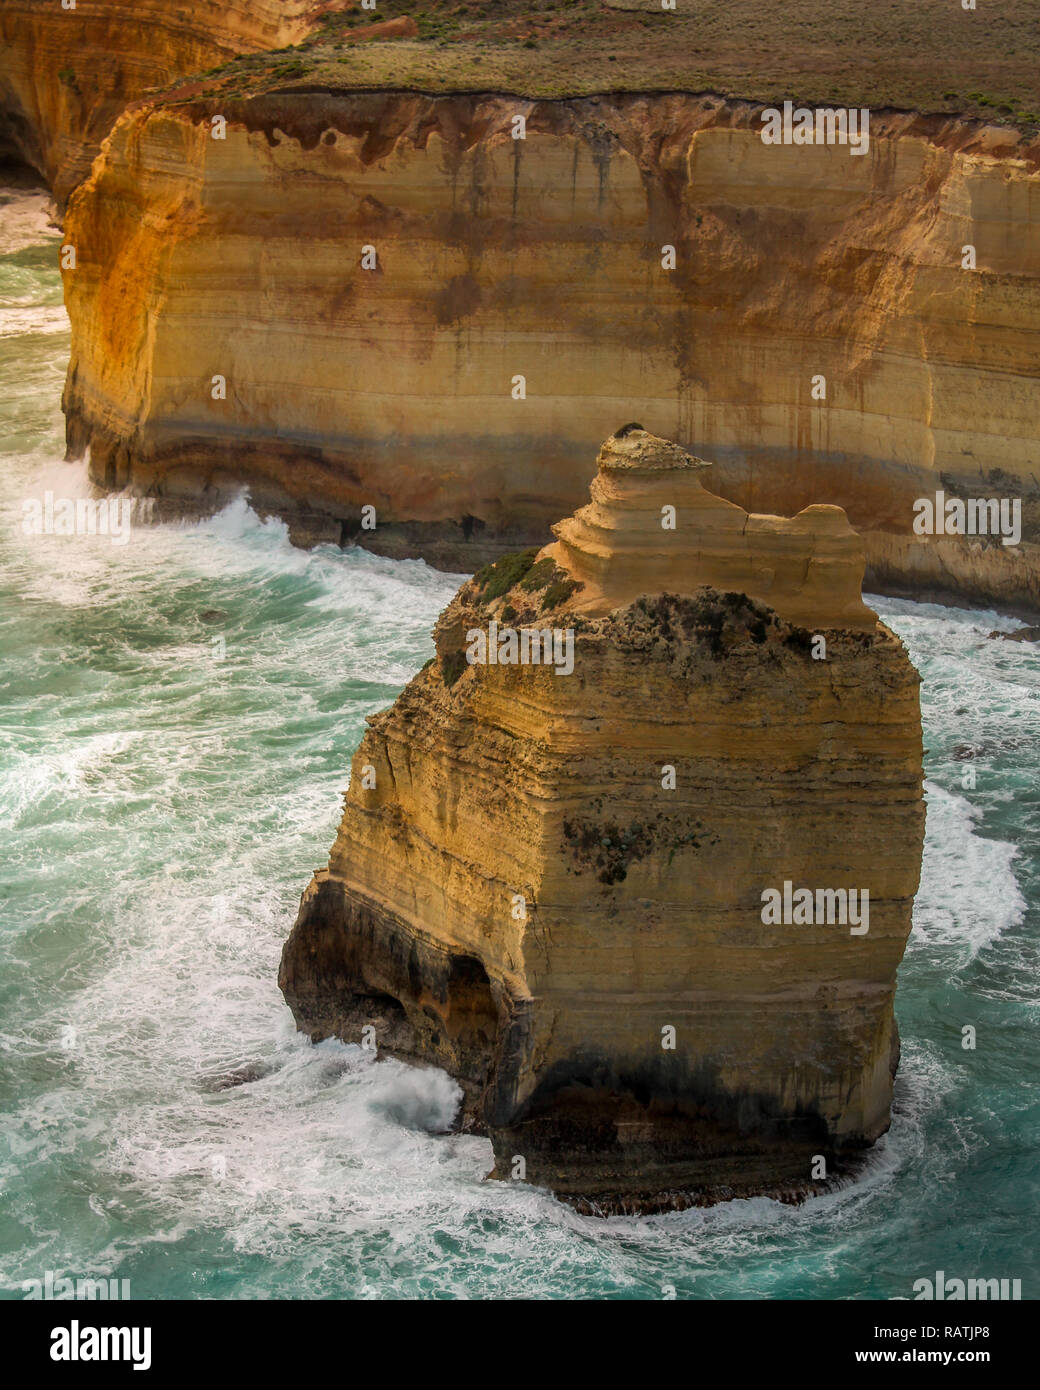 Aerial view onto one of the Twelve Apostles at the Great Ocean Road captured inside of a helicopter at sunset / dawn (Great Ocean Road, Australia) - Stock Image